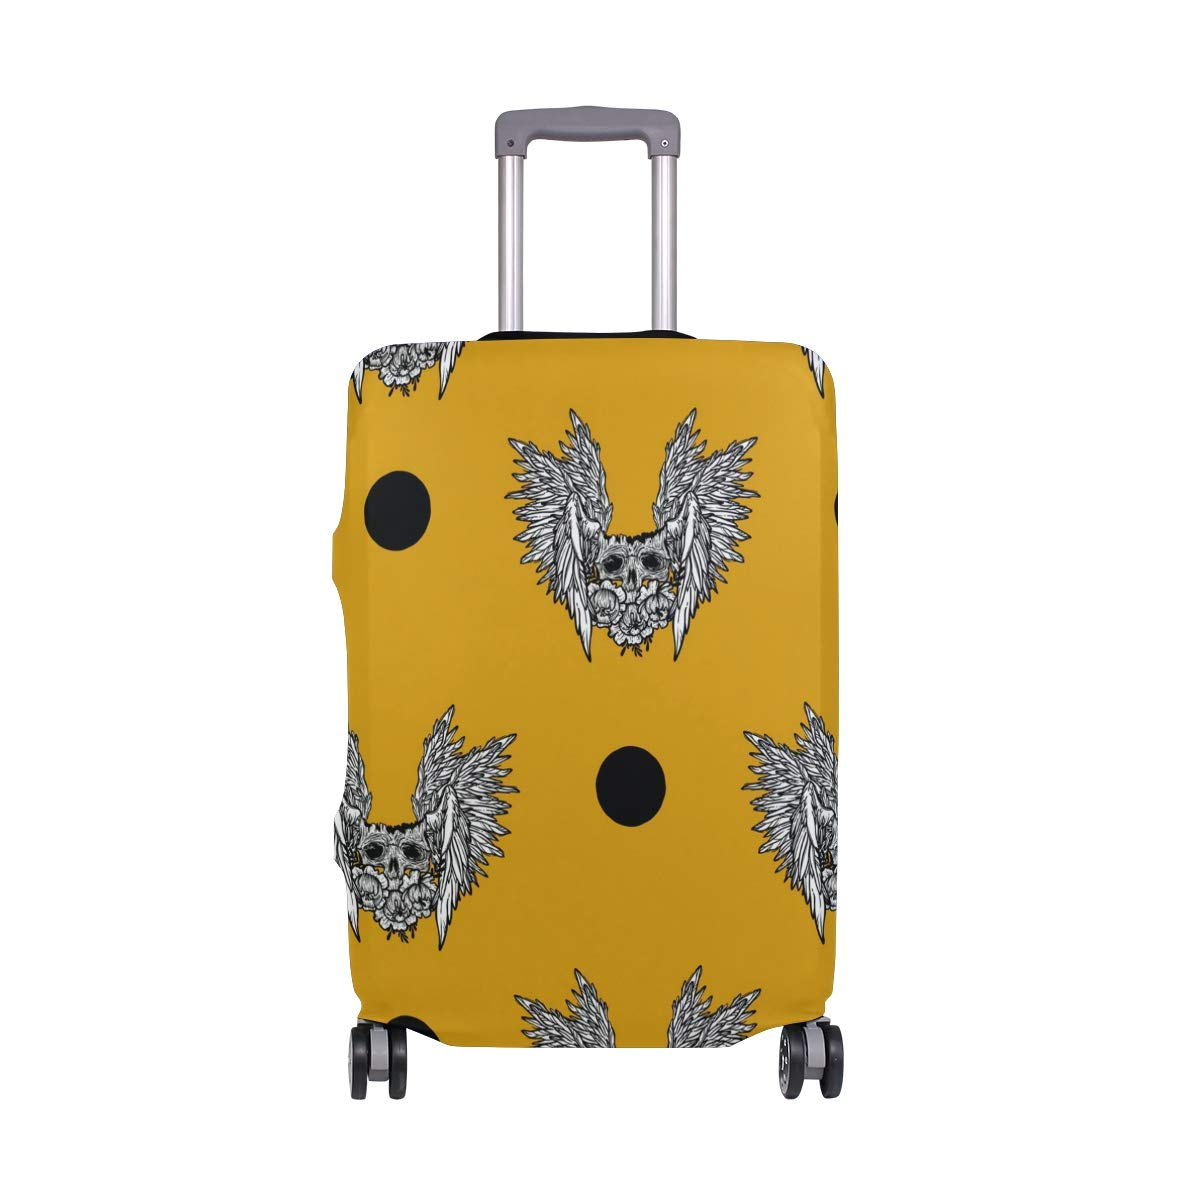 Yellow Background Fashion Skull Traveler Lightweight Rotating Luggage Protector Case Can Carry With You Can Expand Travel Bag Trolley Rolling Luggage Protector Case